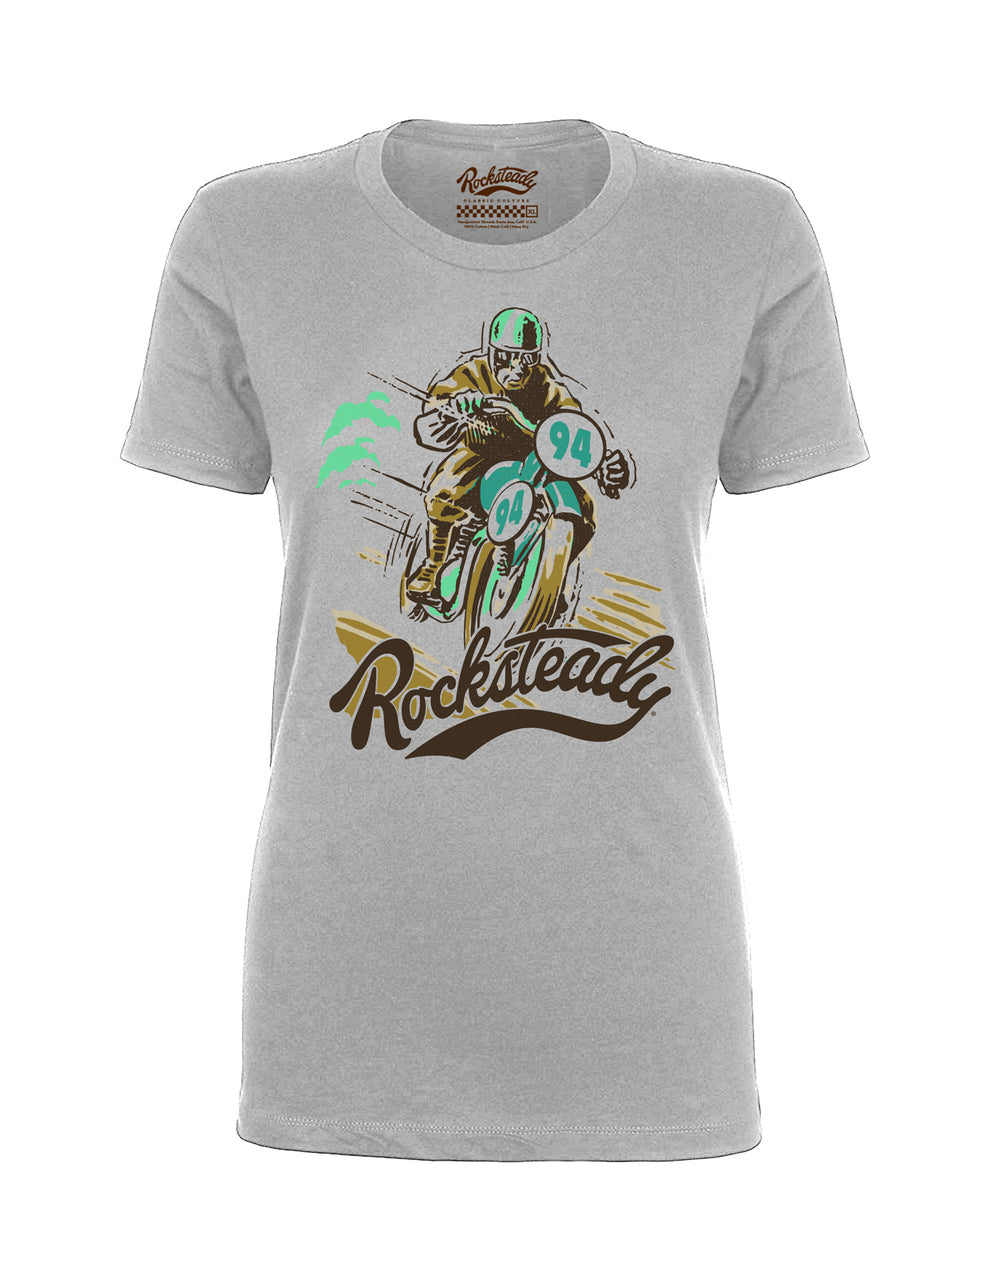 Steady Rocksteady Solo Racer Ladies Tee